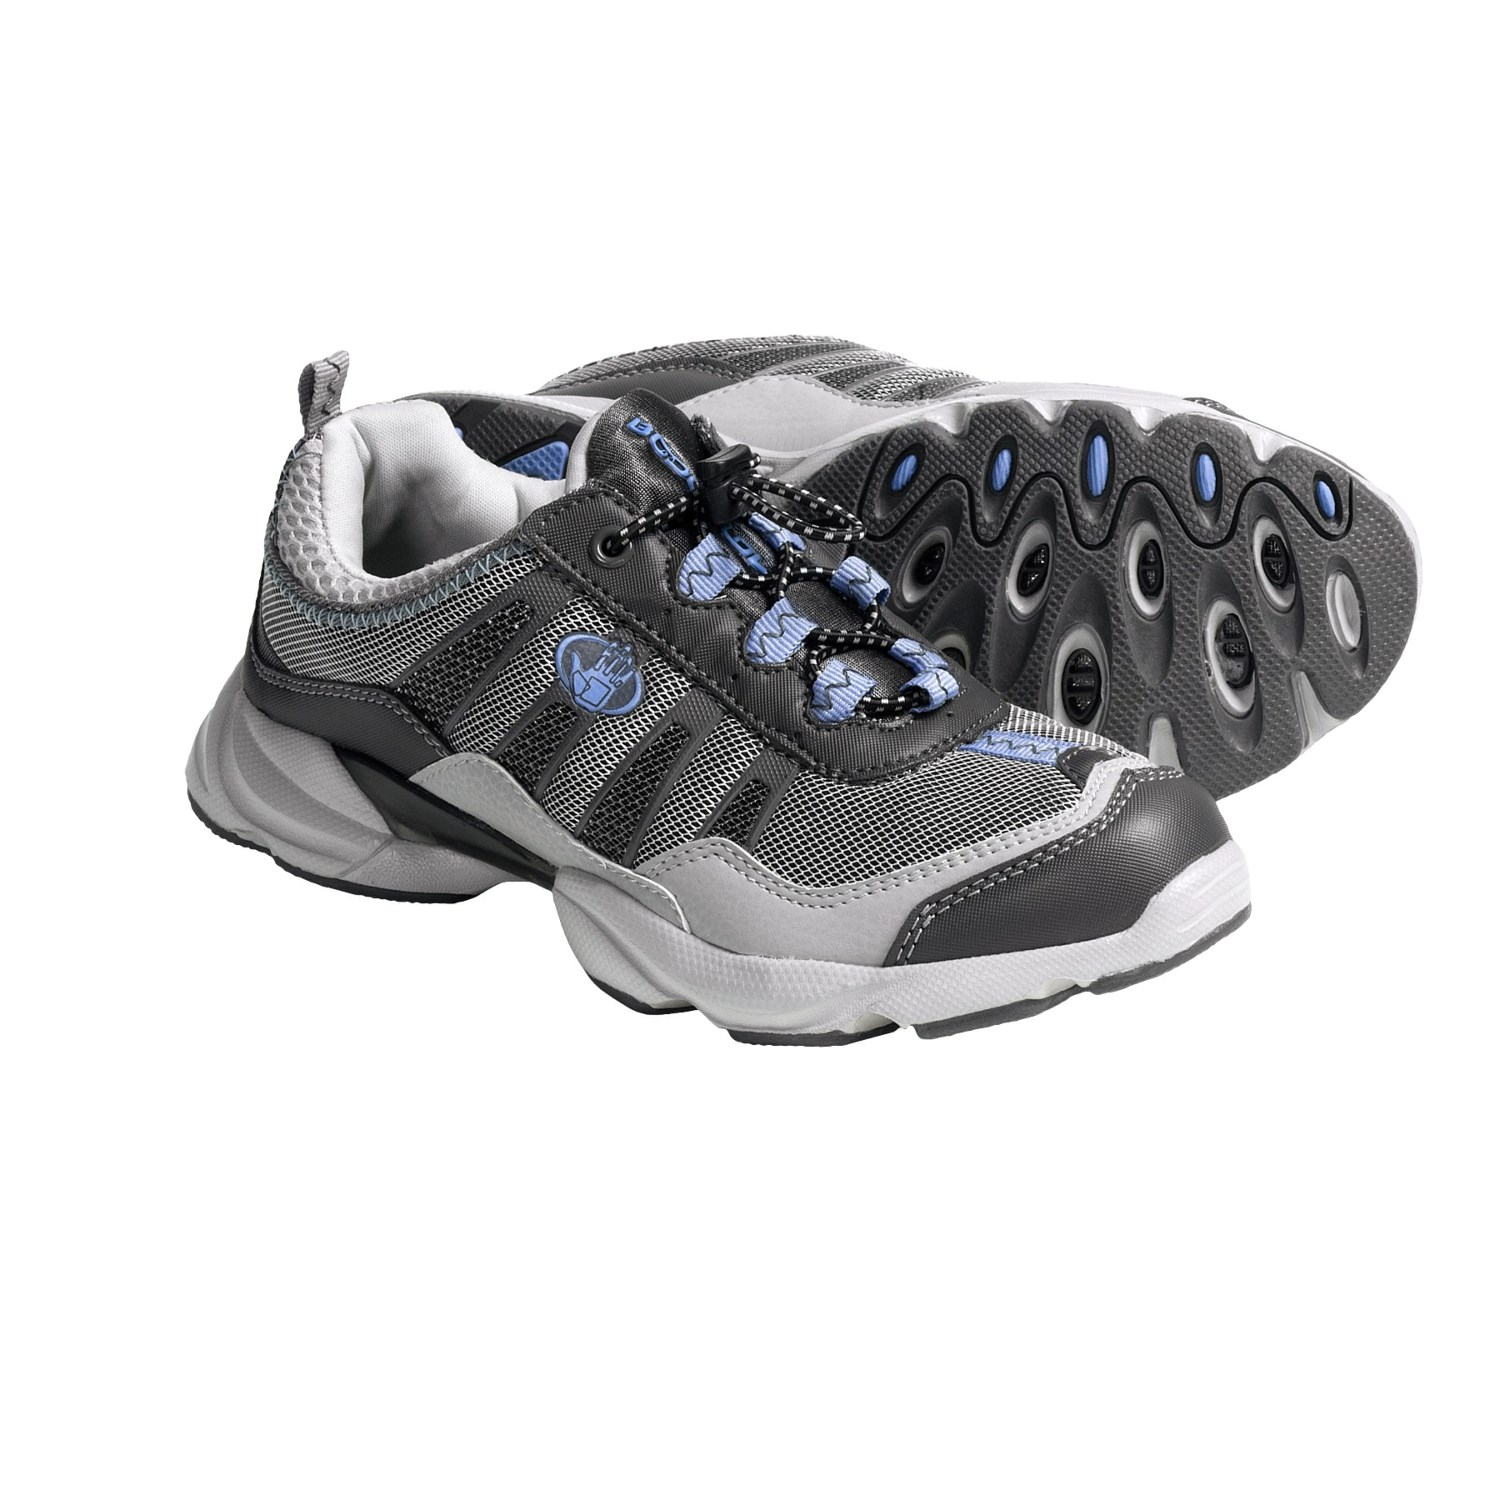 Body Glove Womens 3T Barefoot Max Water Shoes   Sportsman's Warehouse